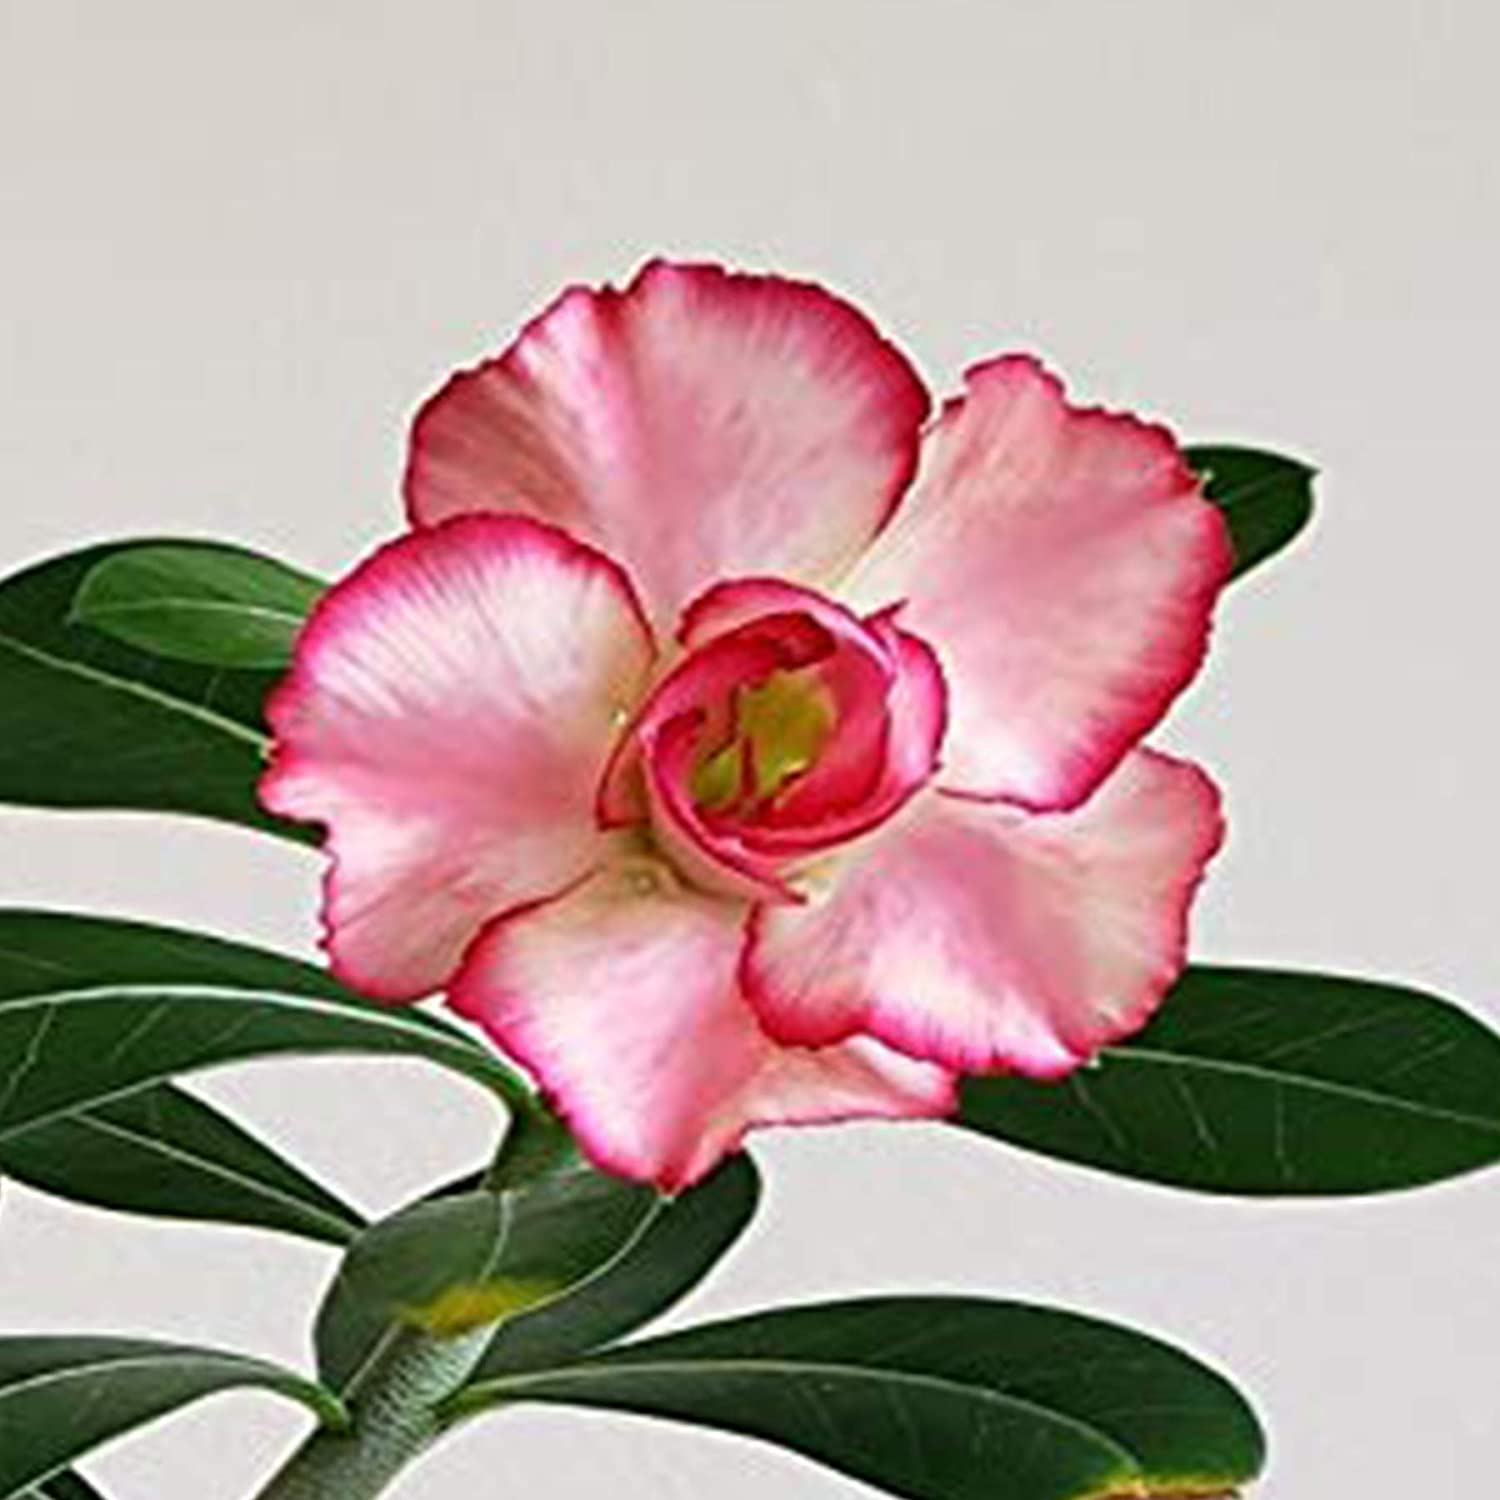 01 Big Harry Easy Care Rare Adenium Obesum Double Flower New Hybrids Grafted Mature Plant Not Just Seeds Desert Rose Plant